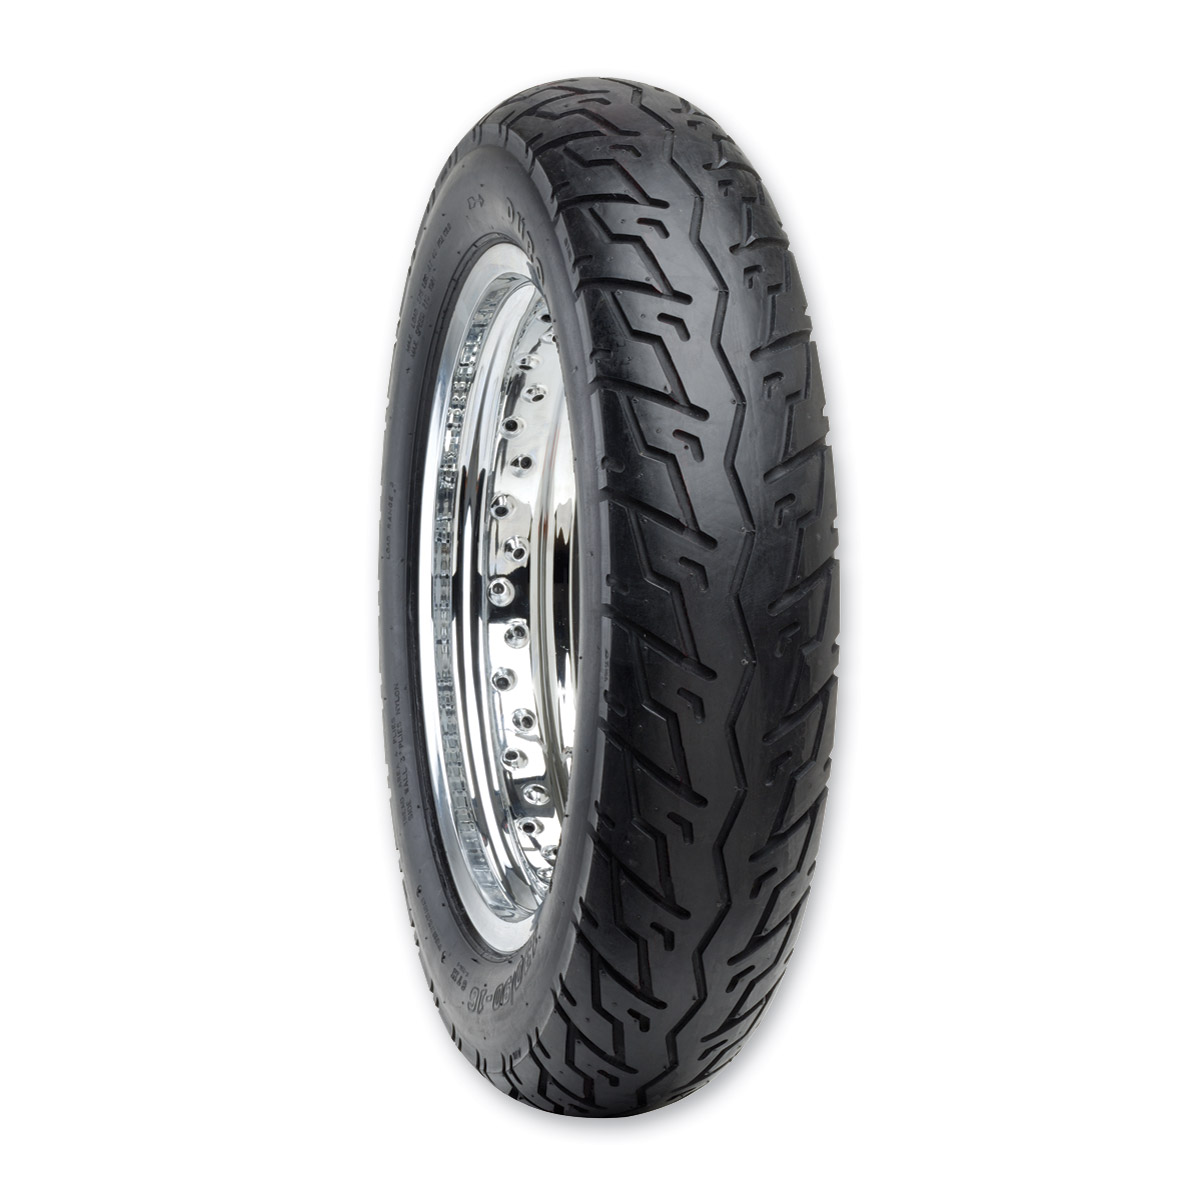 Duro HF261A Excursion 120/90-18 Front/Rear Tire